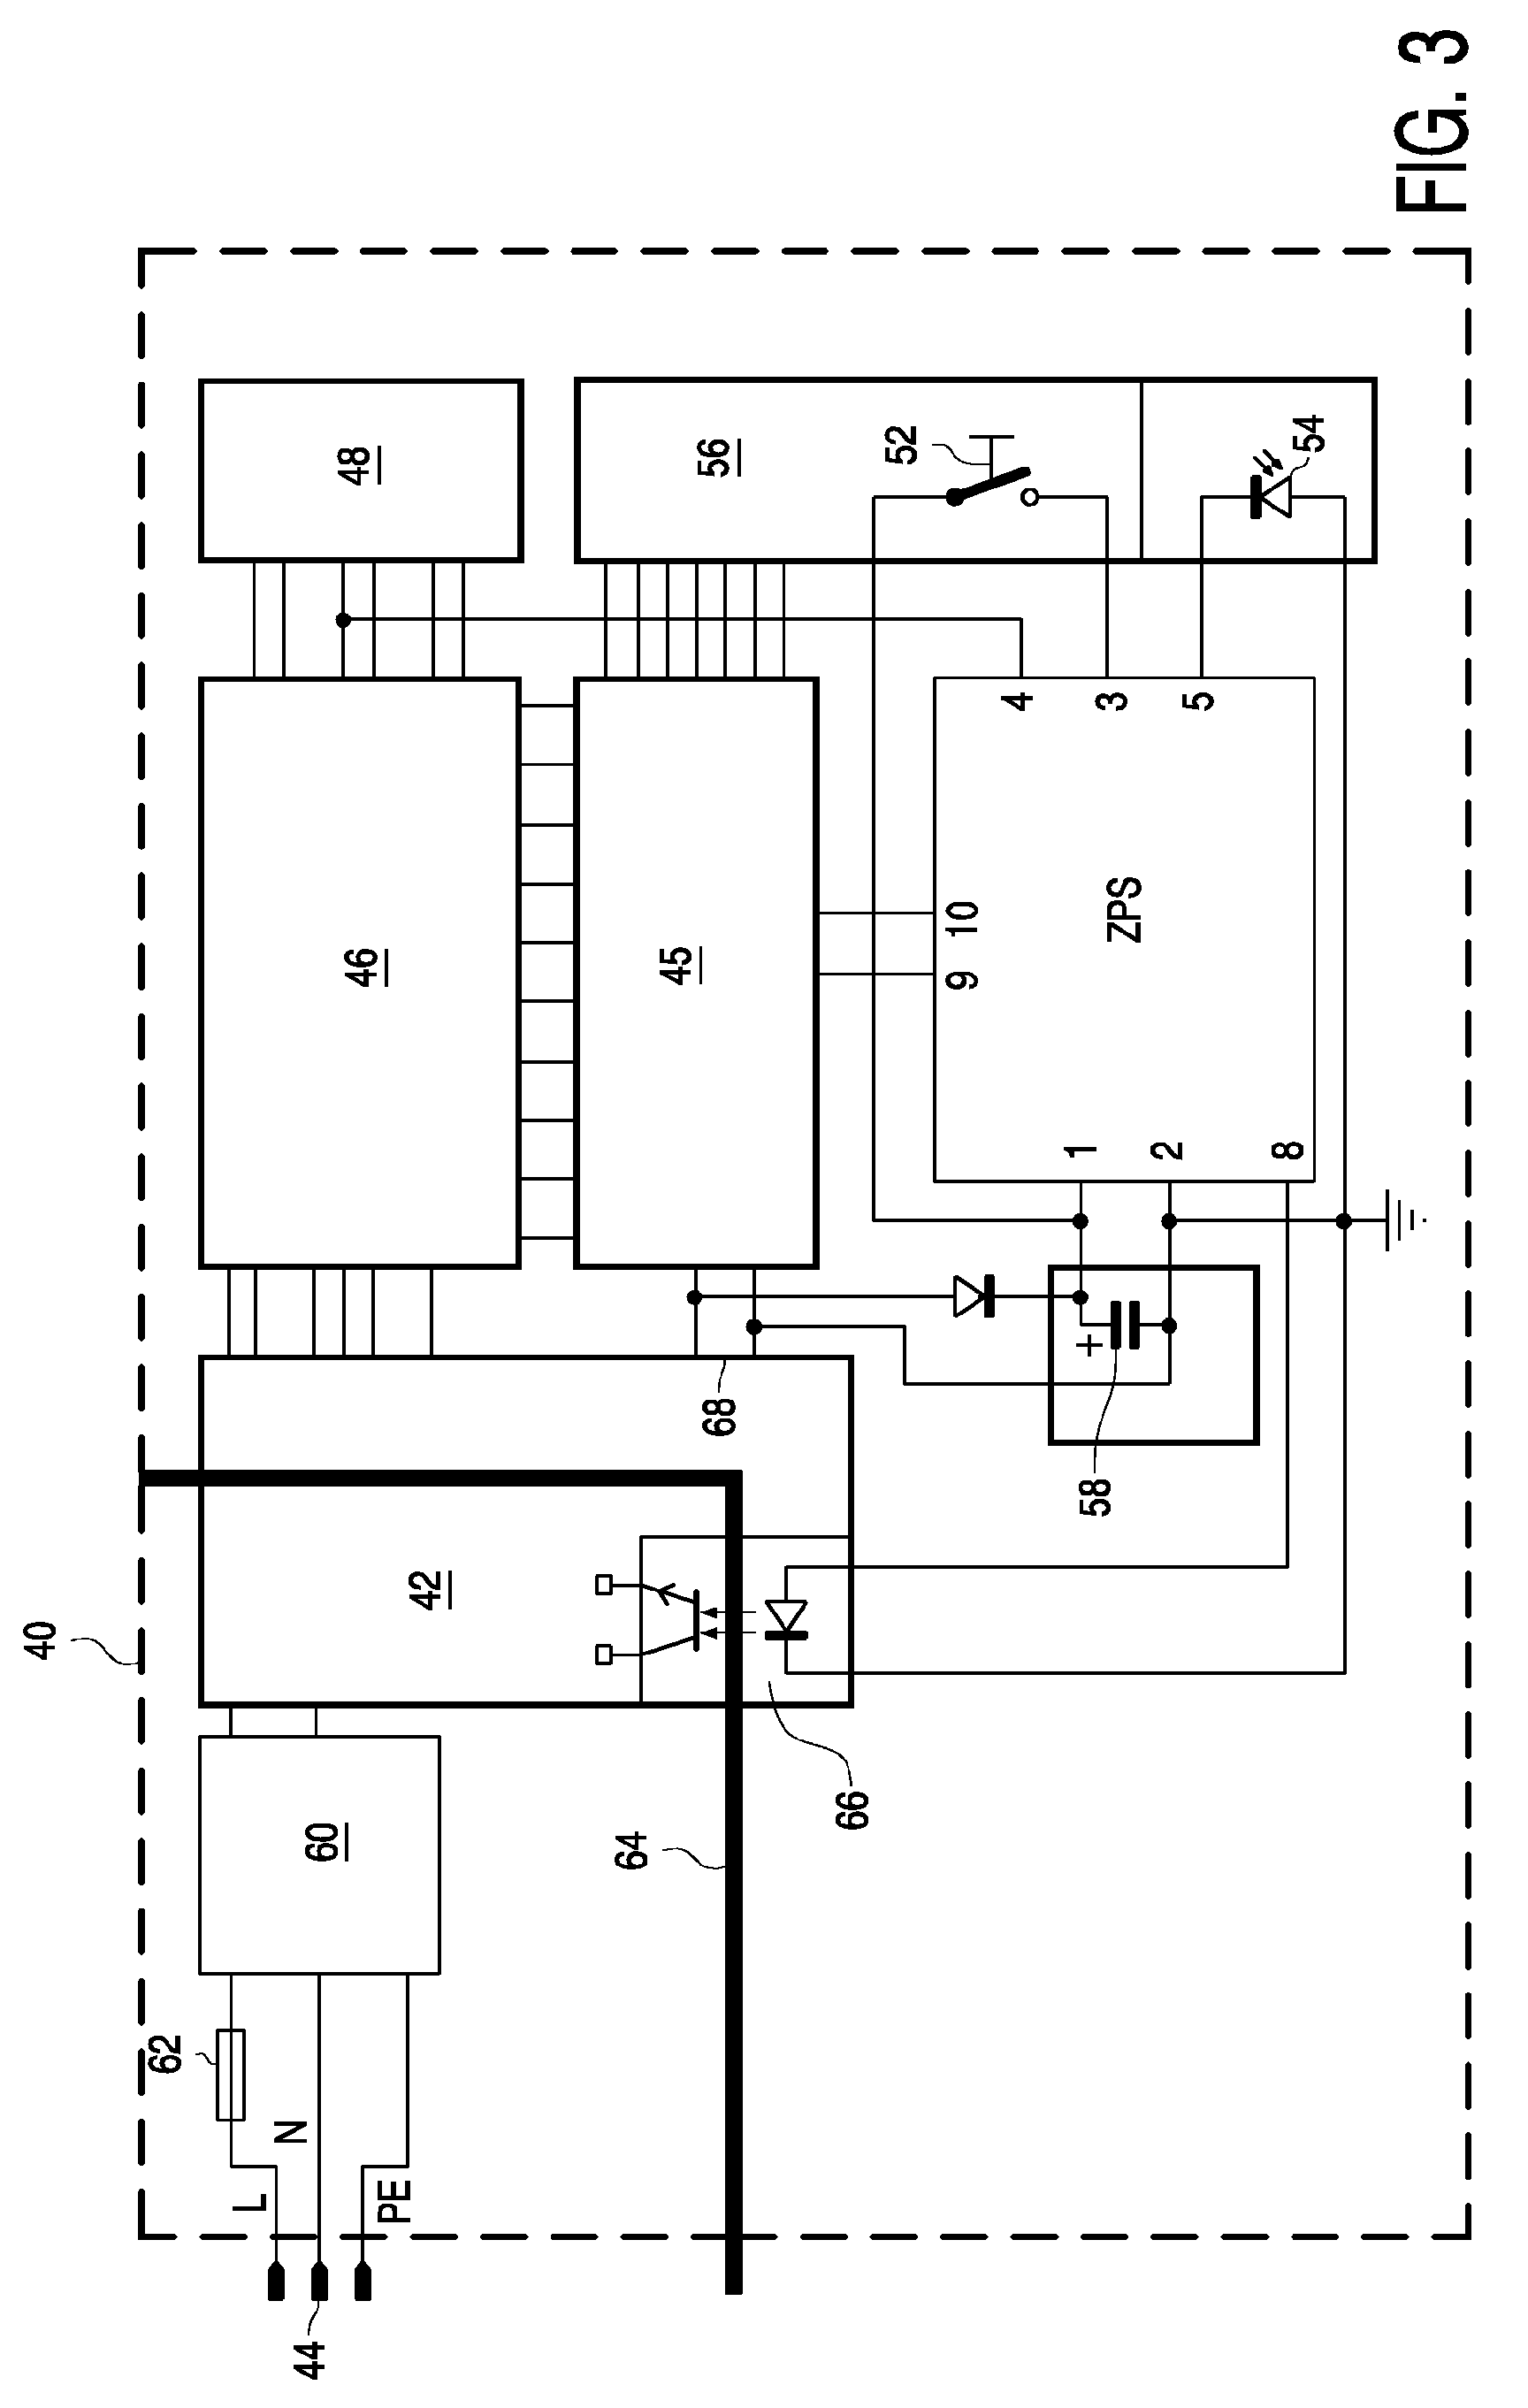 EP1231698A2 - Stand-by circuit for an electric apparatus ... on